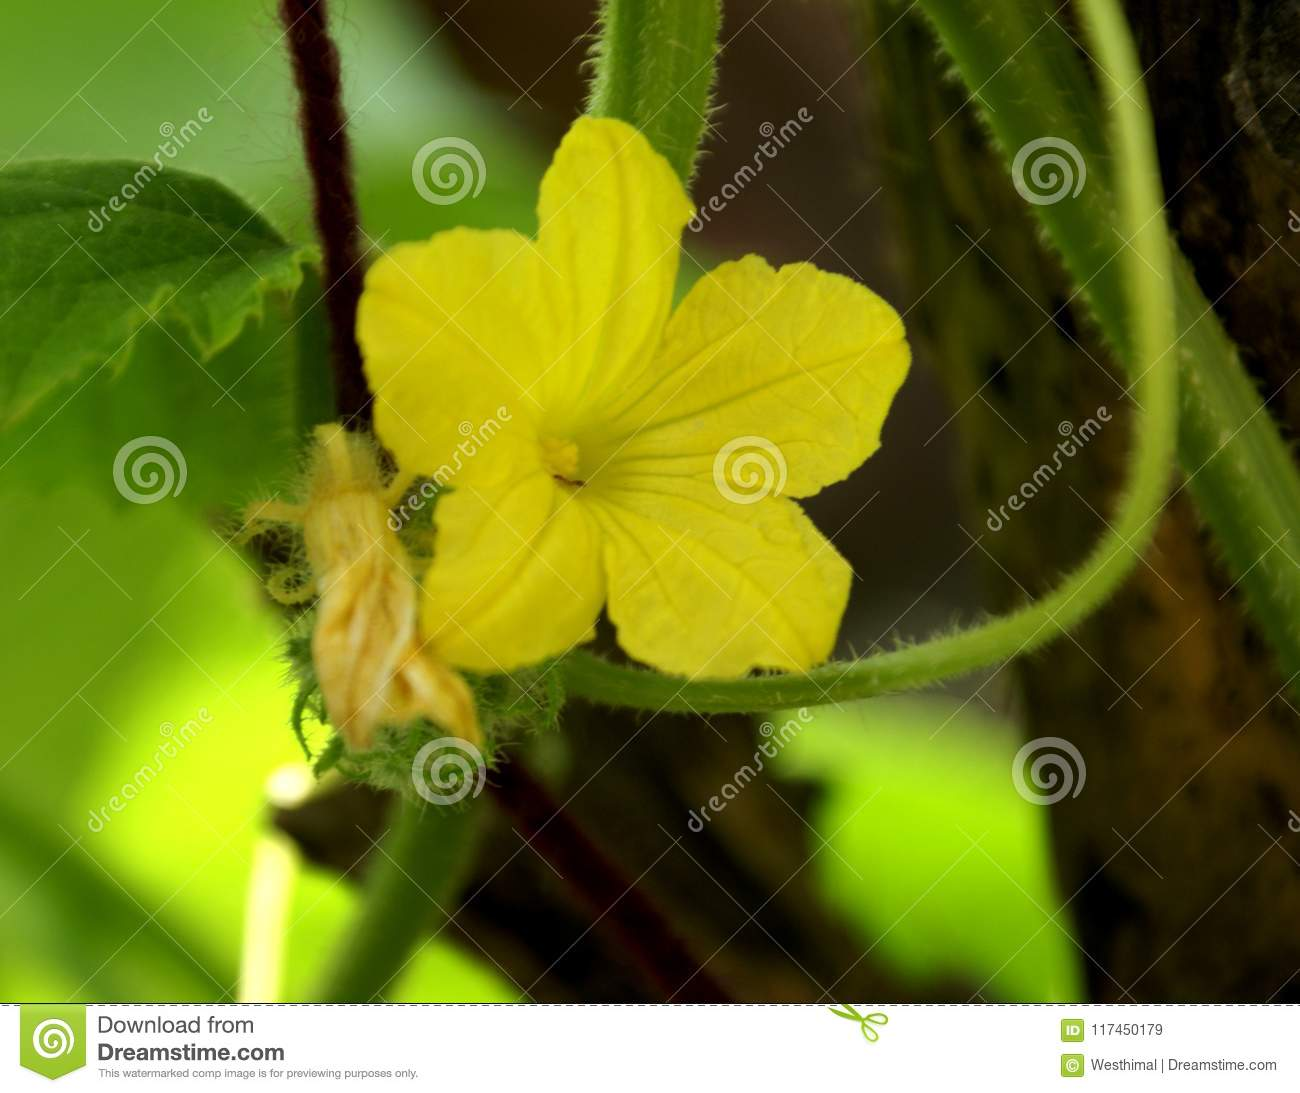 Cucumber Vine With Leaves And Flowers Cucumis Sativus Stock Image